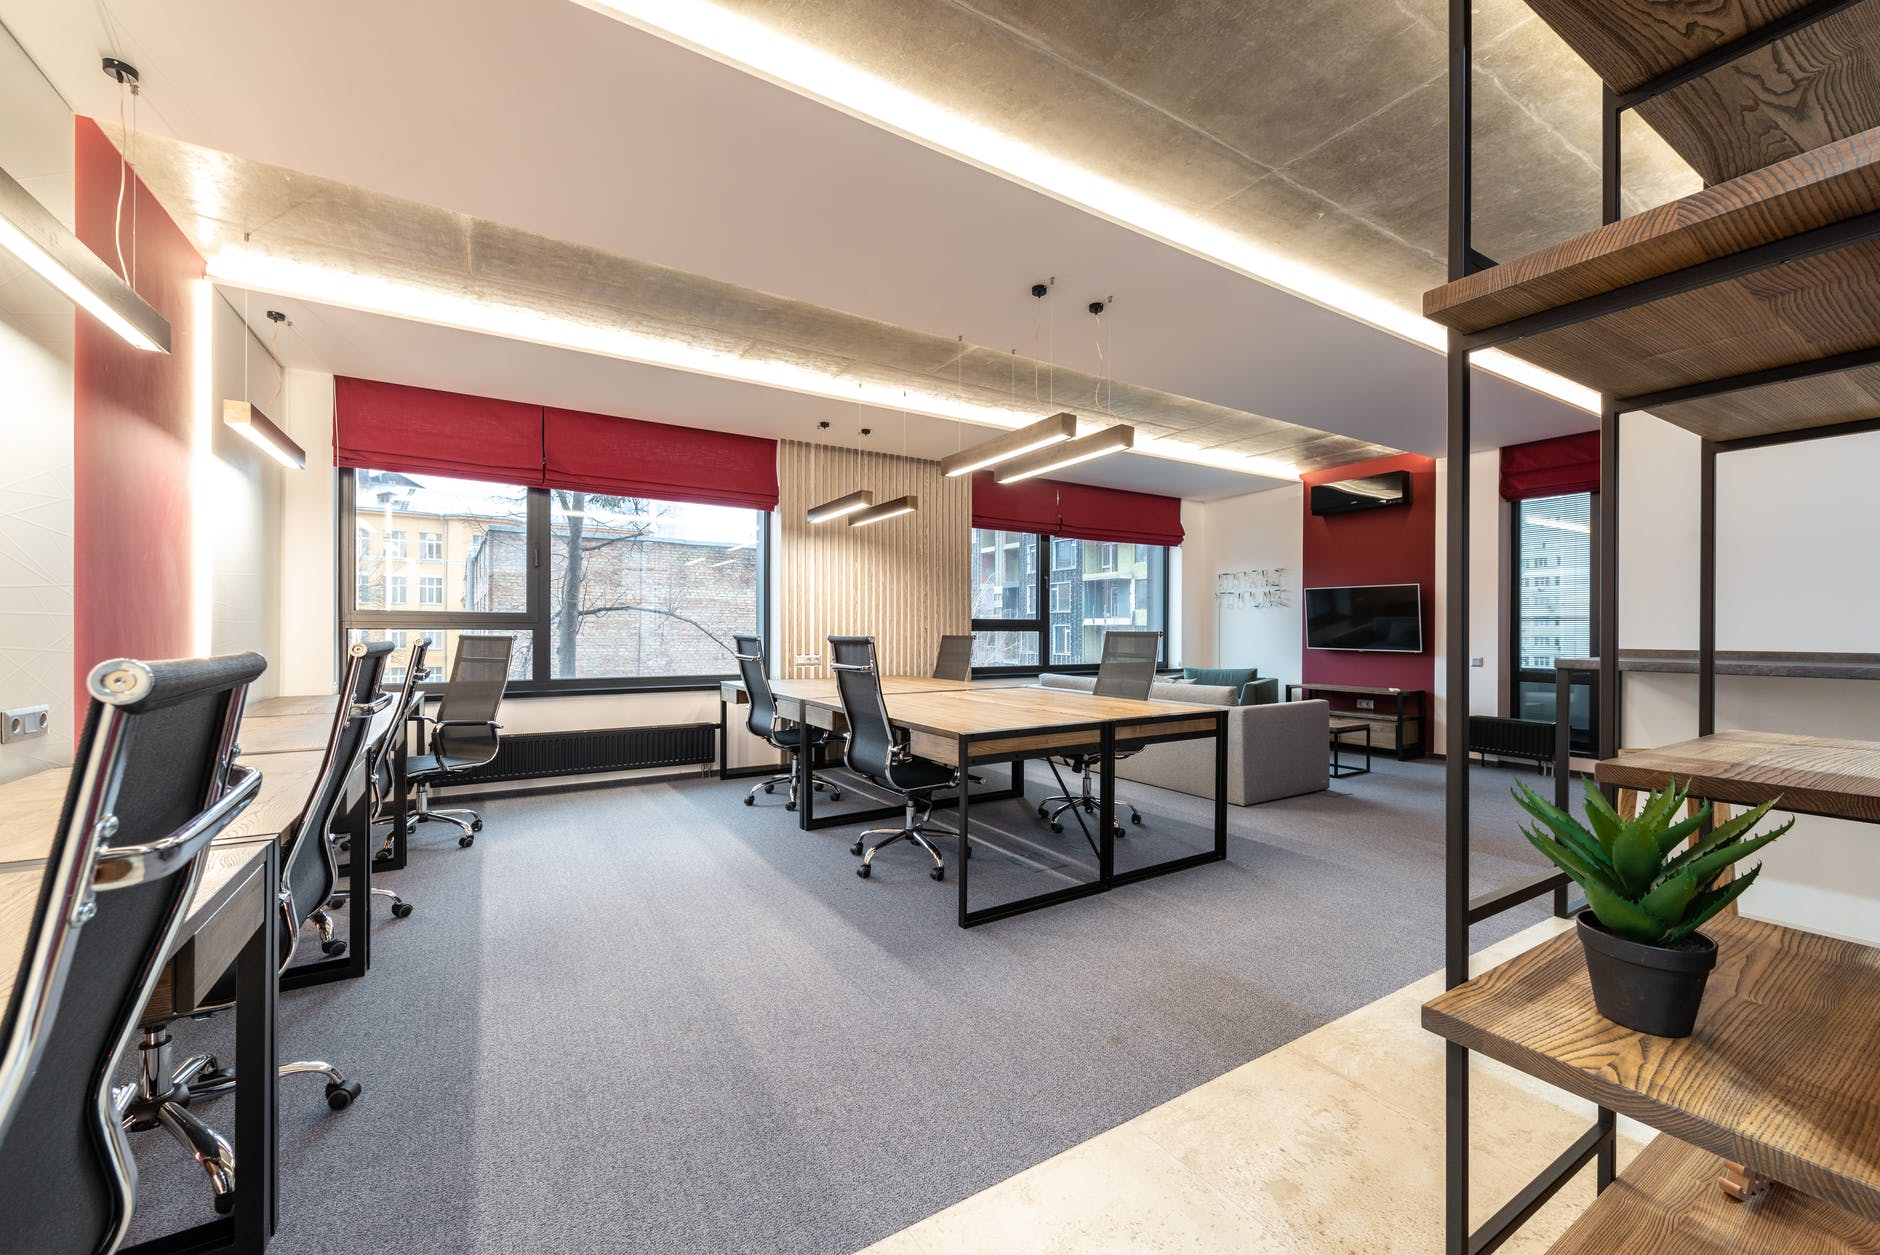 office with tables and chairs near windows